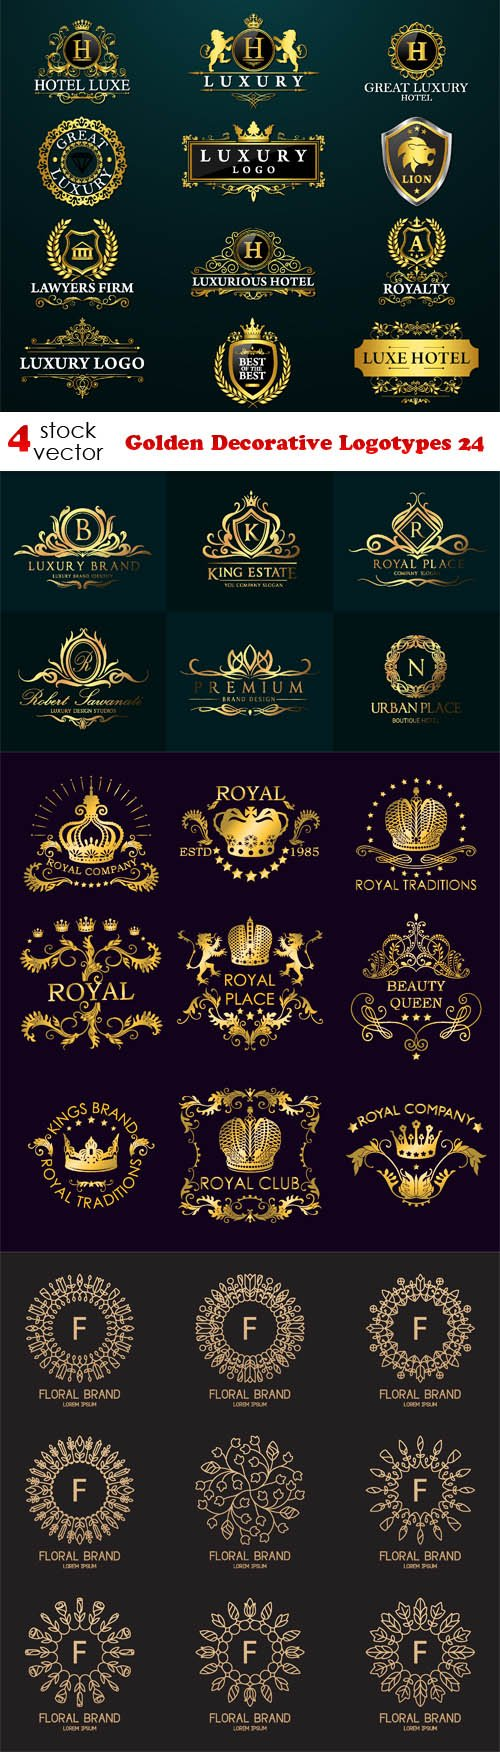 Vectors - Golden Decorative Logotypes 24